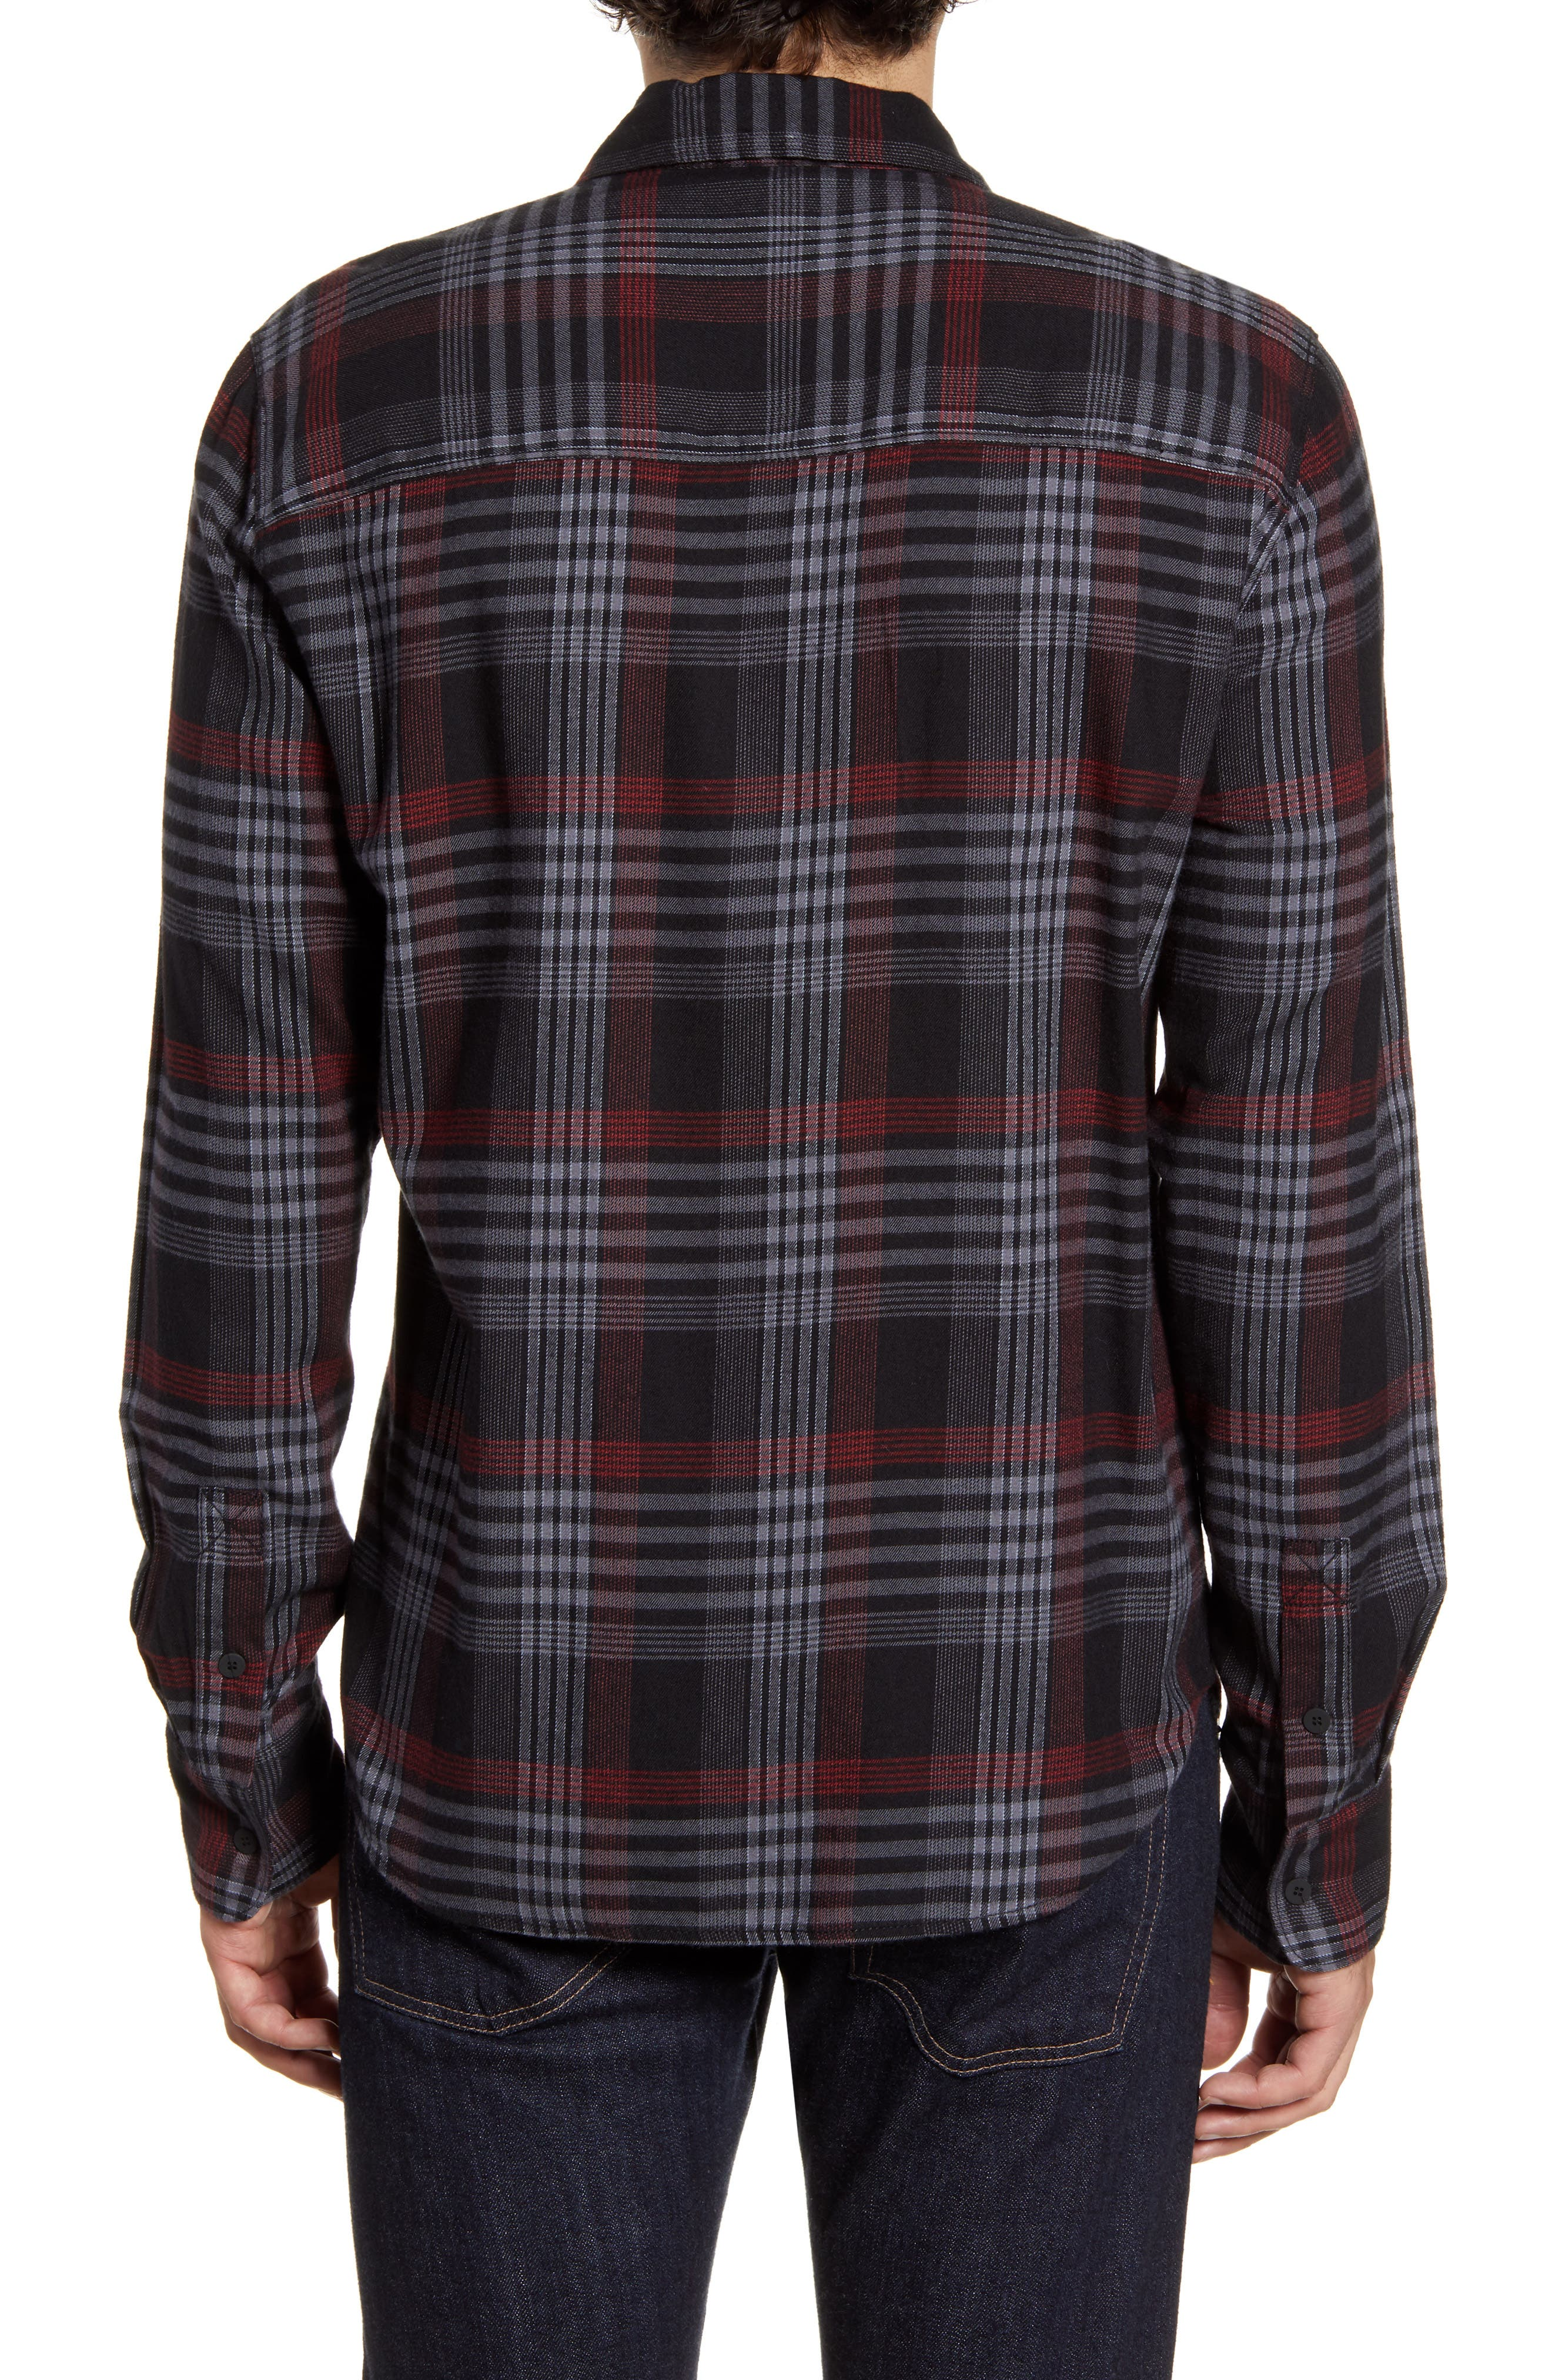 Paige T-shirts Everett Regular Fit Plaid Button-Up Shirt